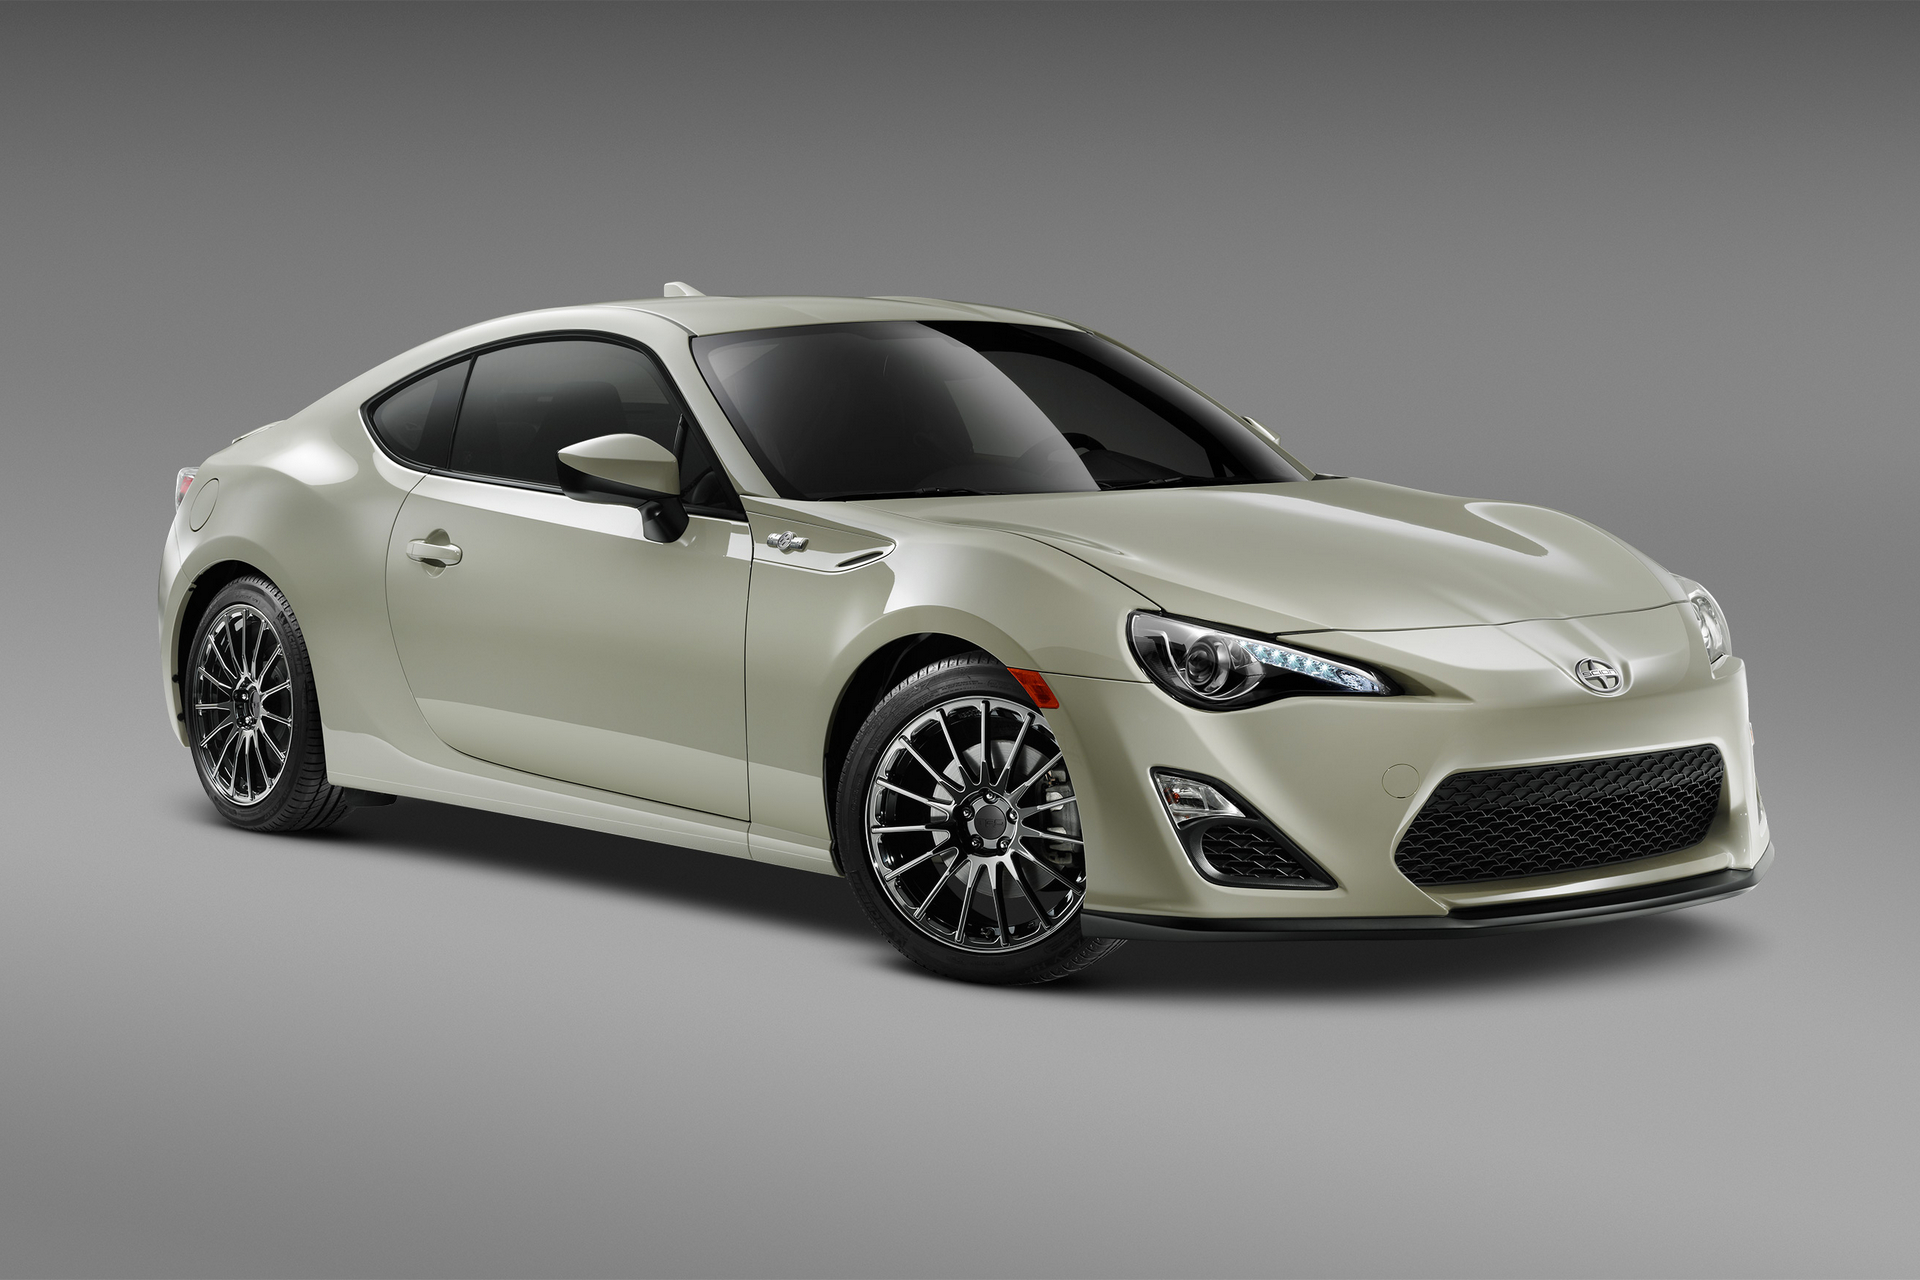 Compare Subaru Brz And Scion Frs